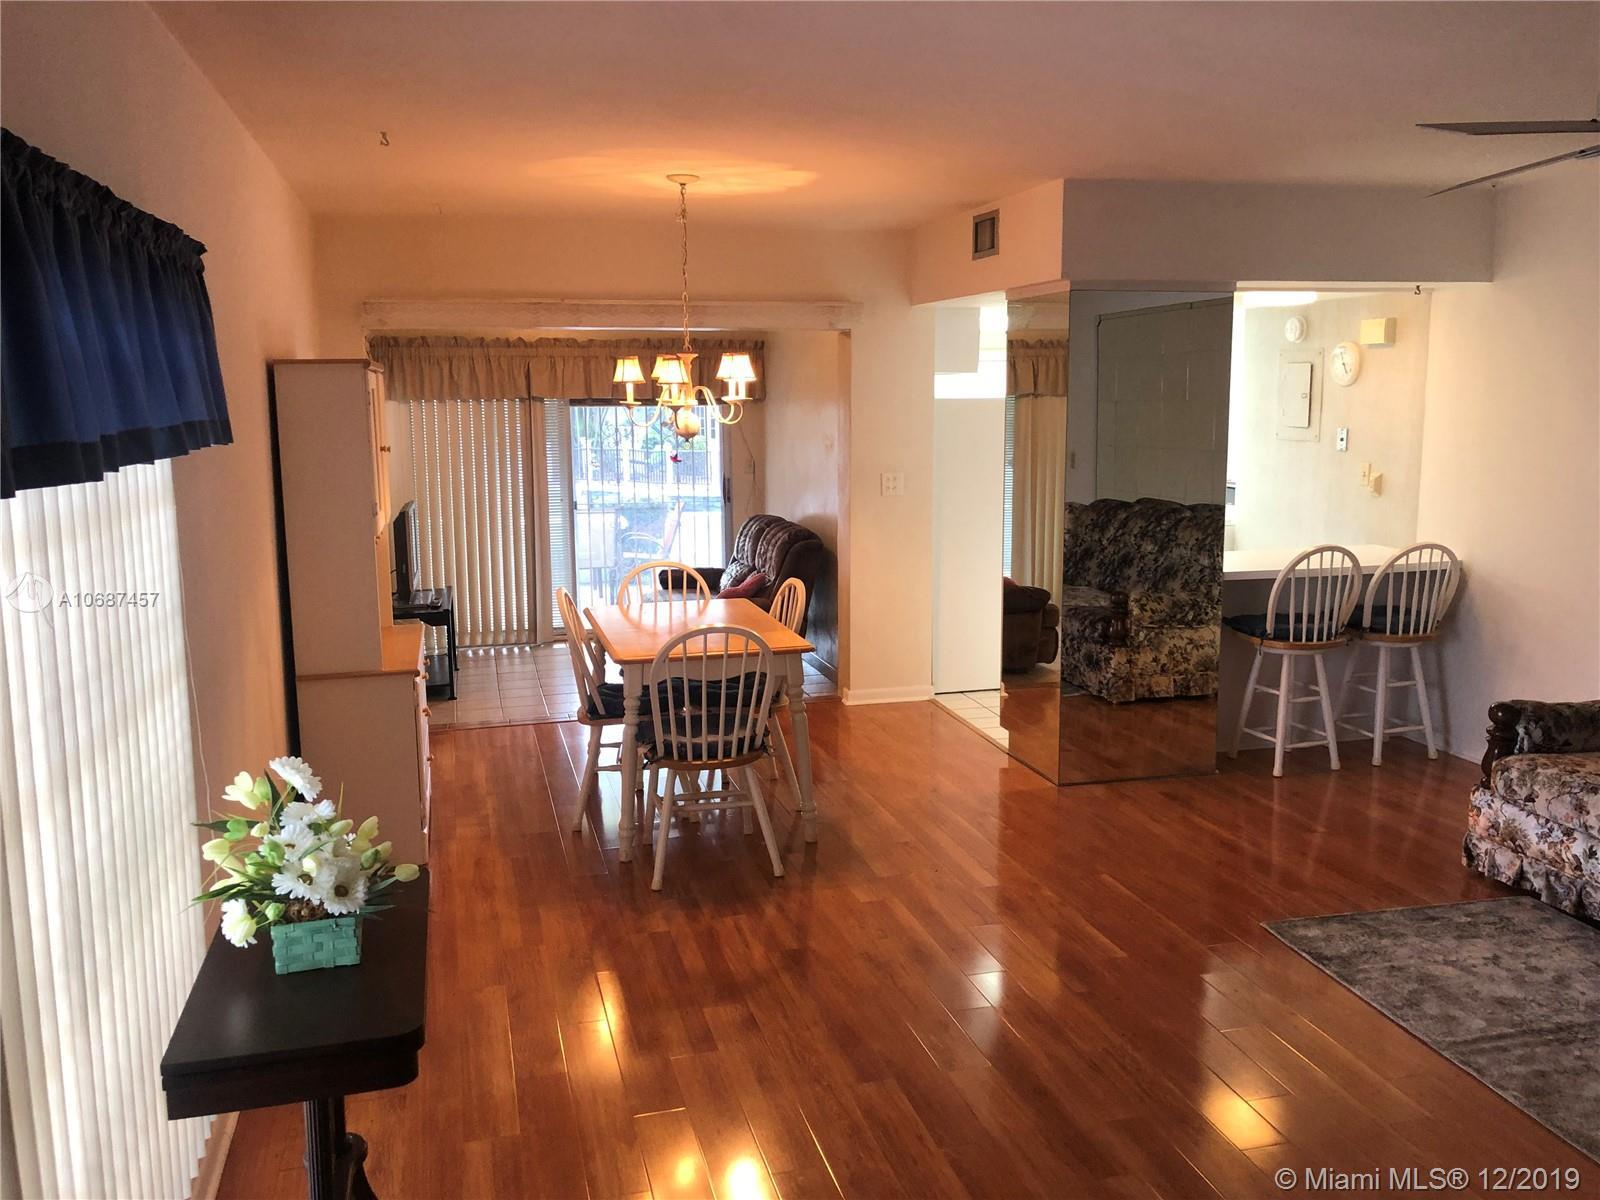 PRICE REDUCED! MUST SEE, 3/2 LAKEFRONT TOWNHOUSE surrounded on two sides by the beautiful Lake. GREA